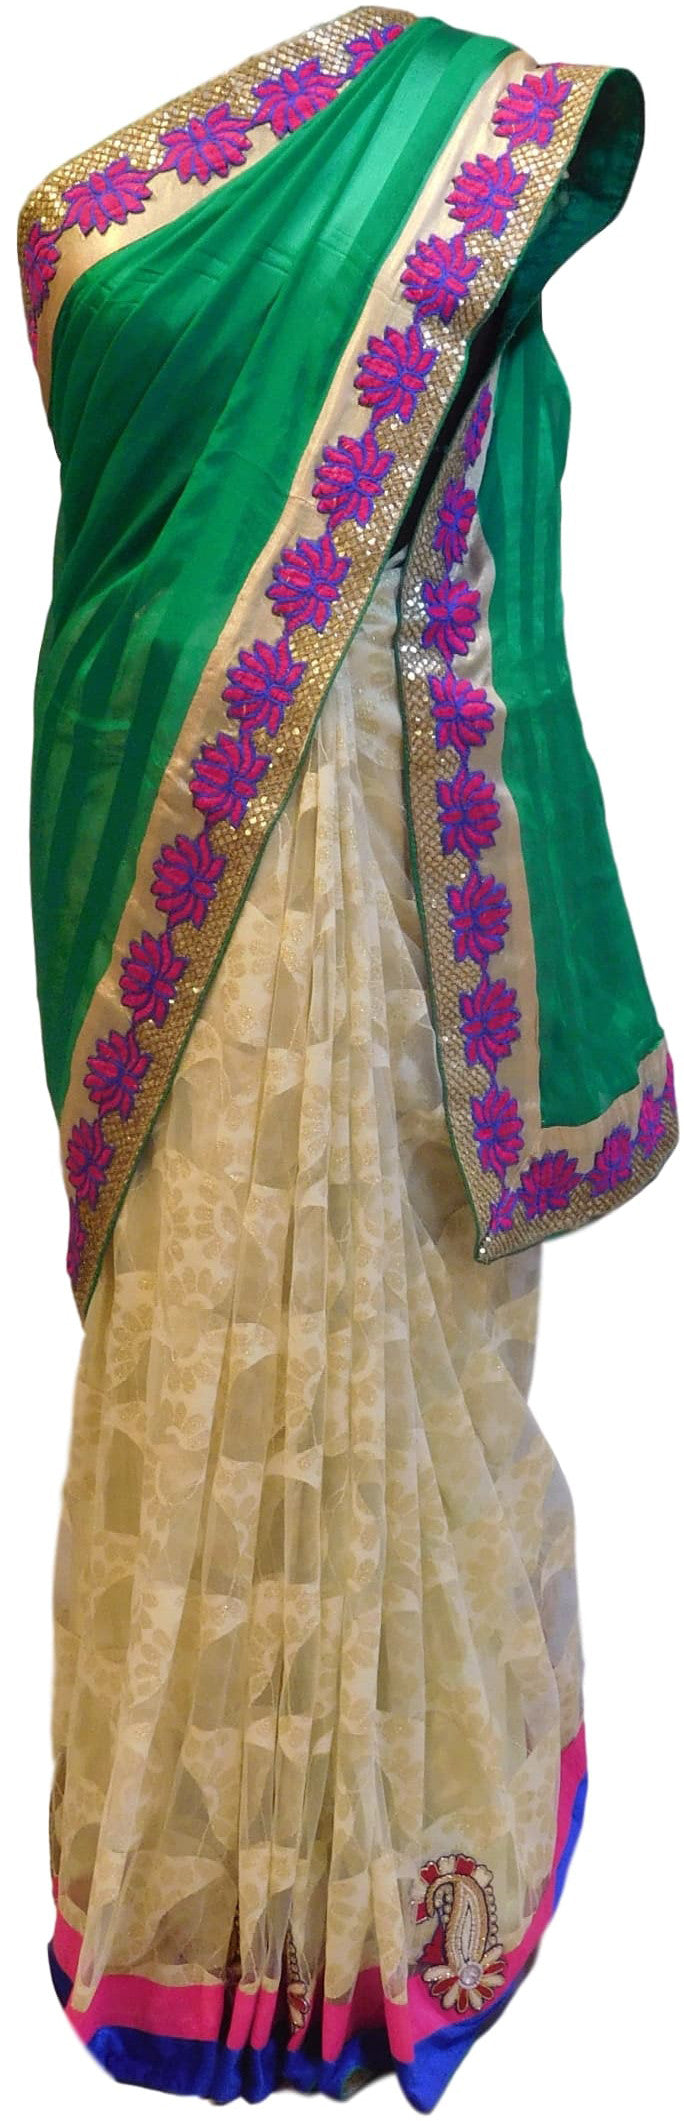 Green & Cream Designer Crep & Net Saree Sari